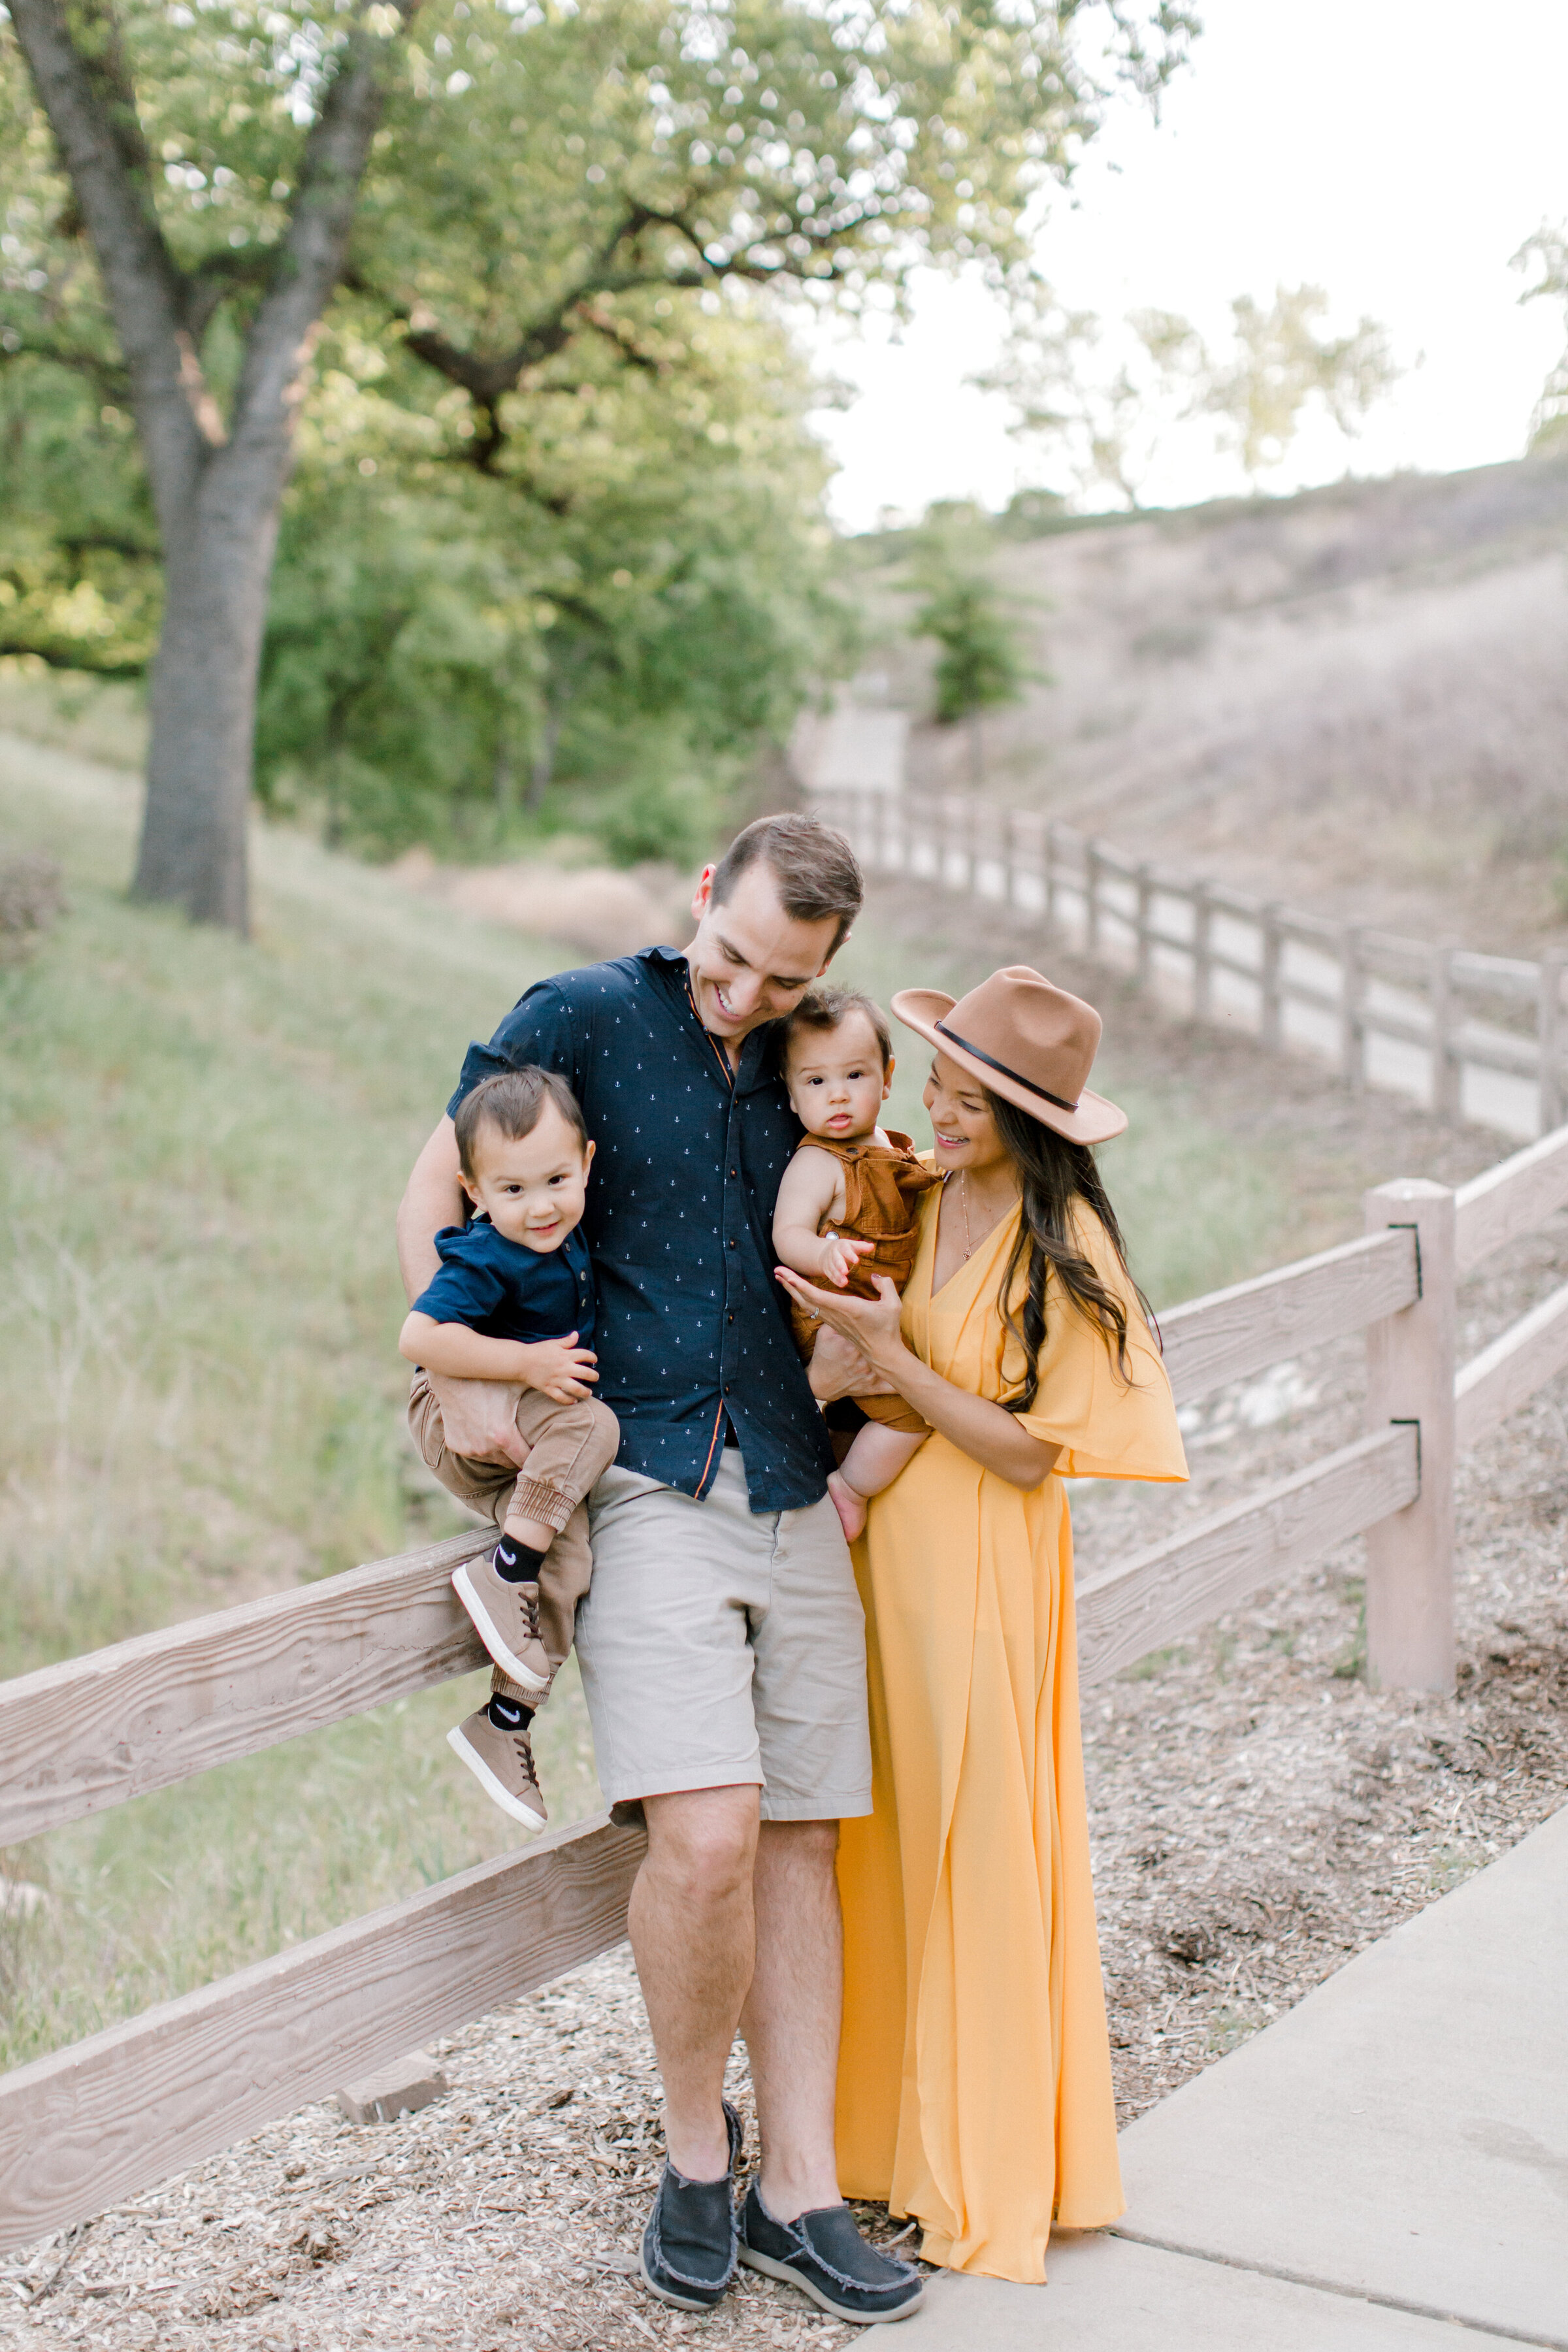 Kosel Family - Sneak Peeks (30 of 30)